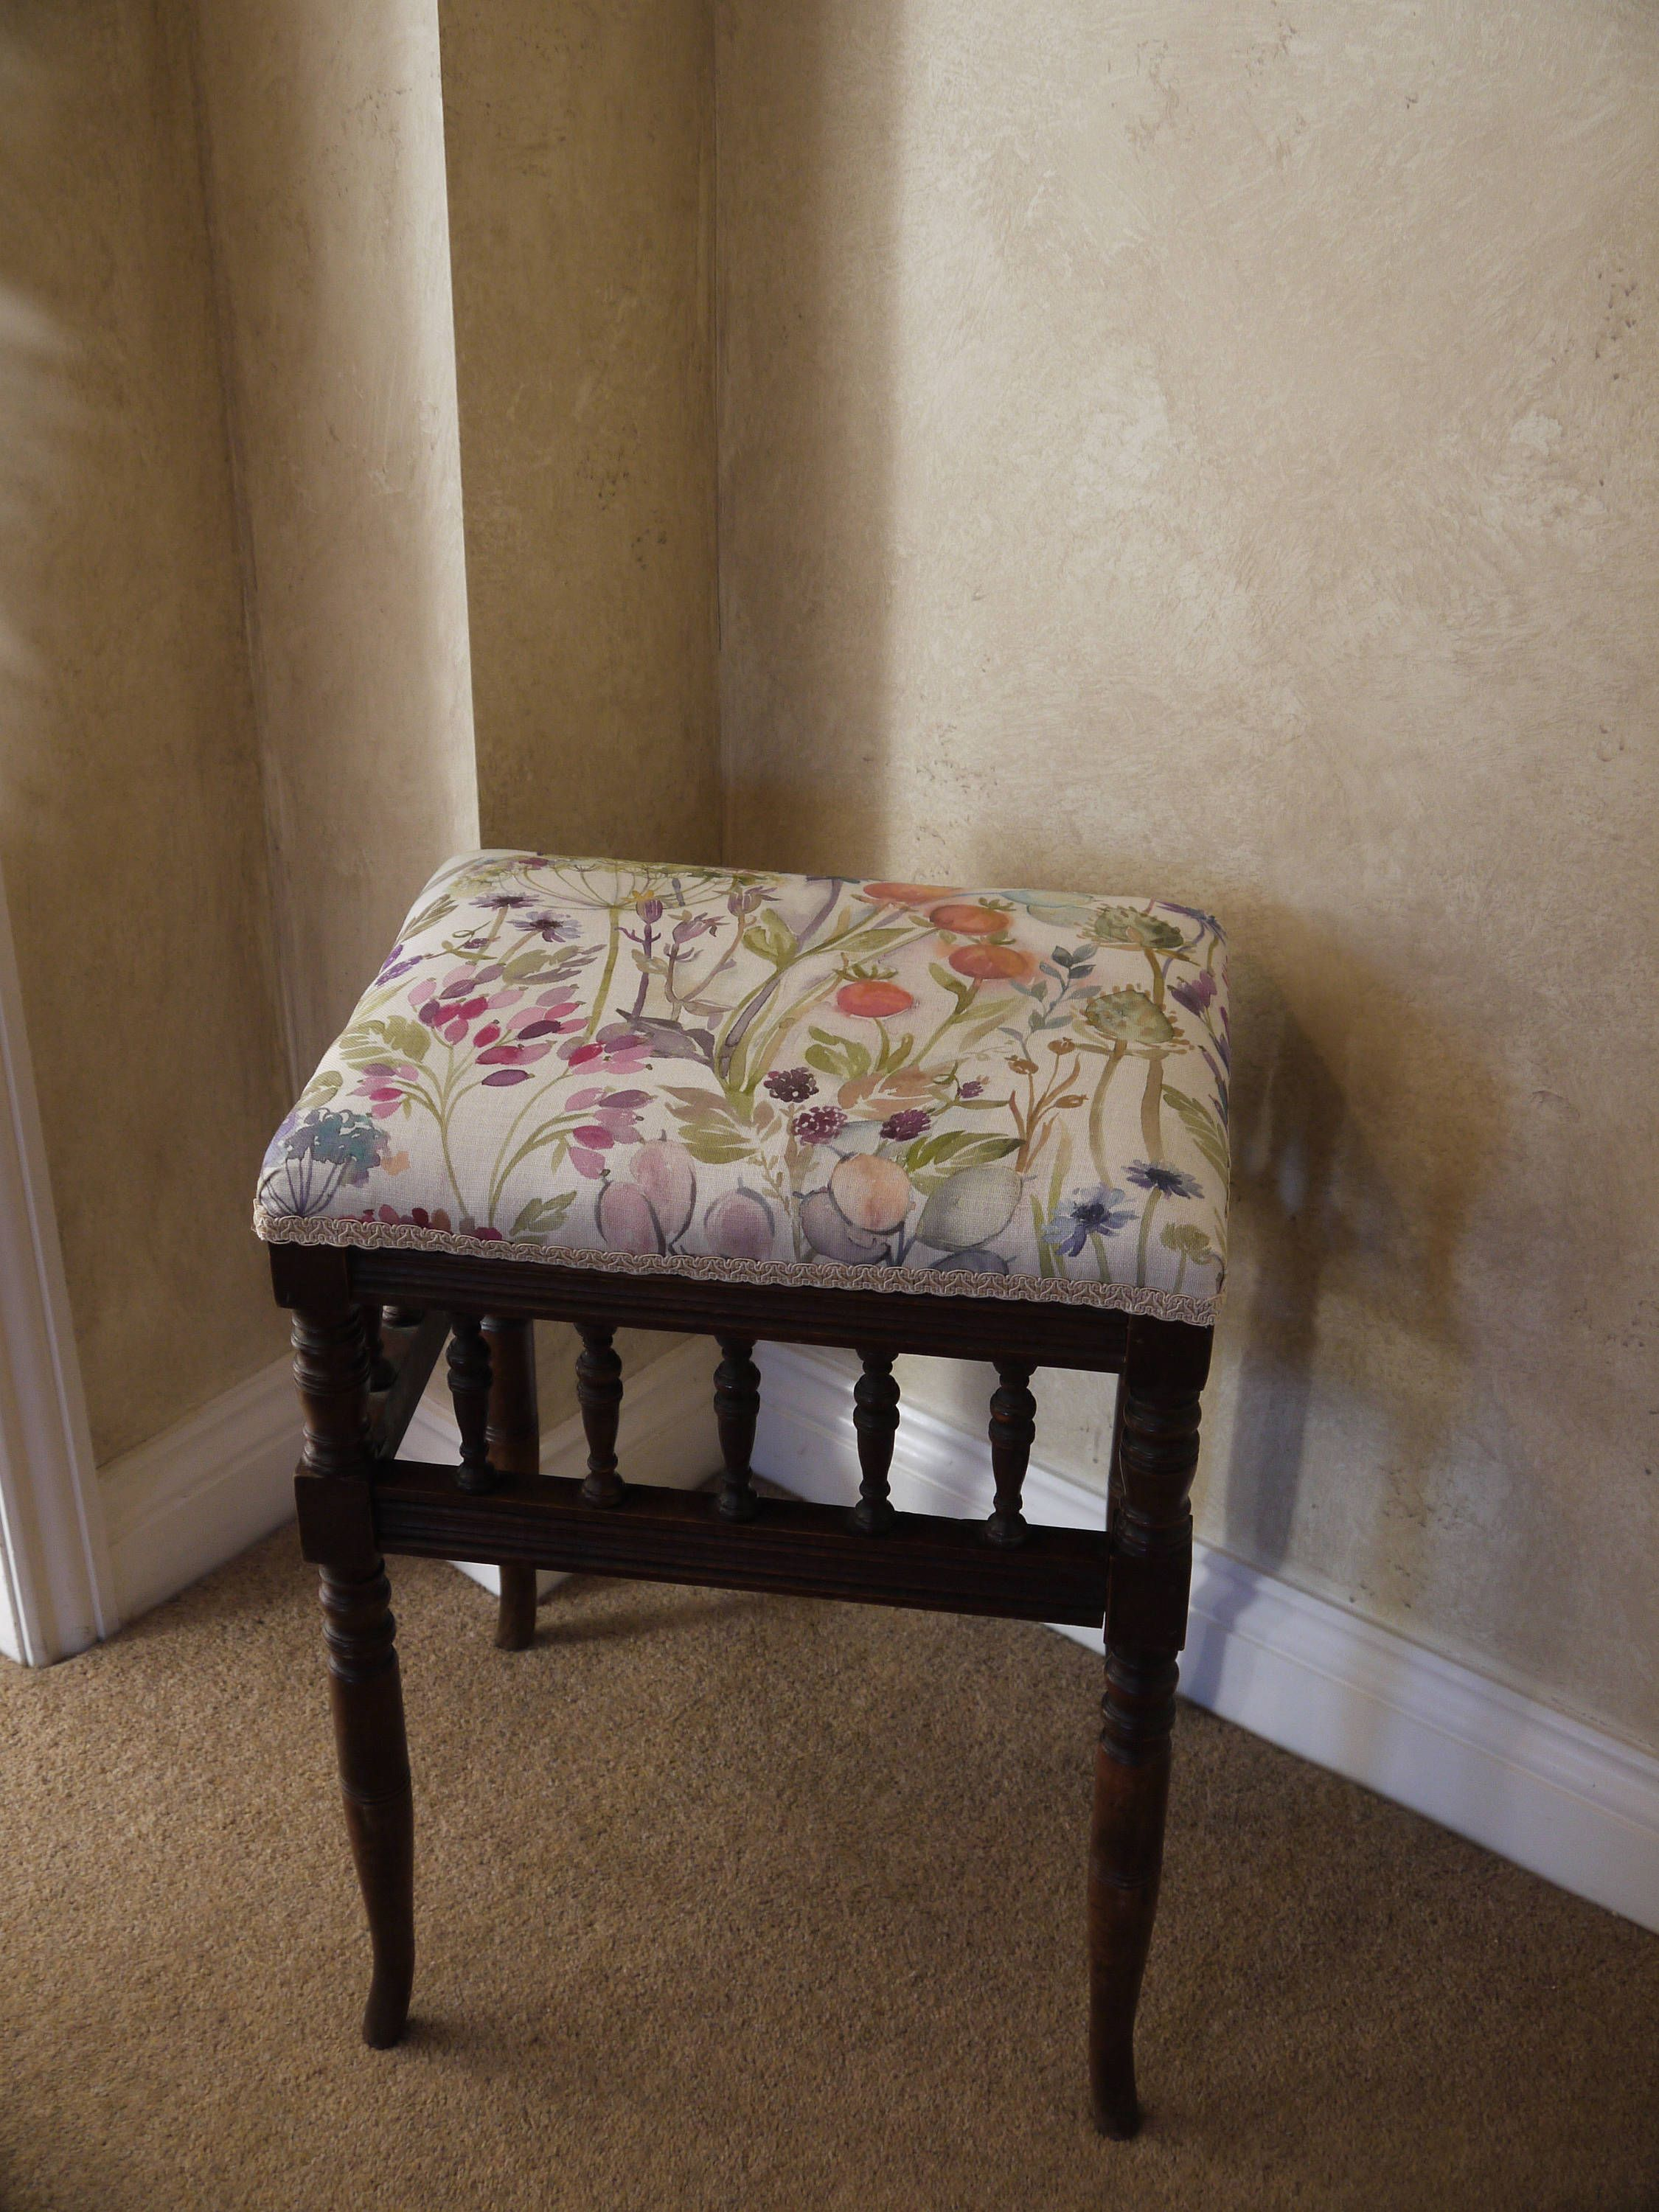 Antique Upholstered Stool Antique Stool Vintage Stool Piano